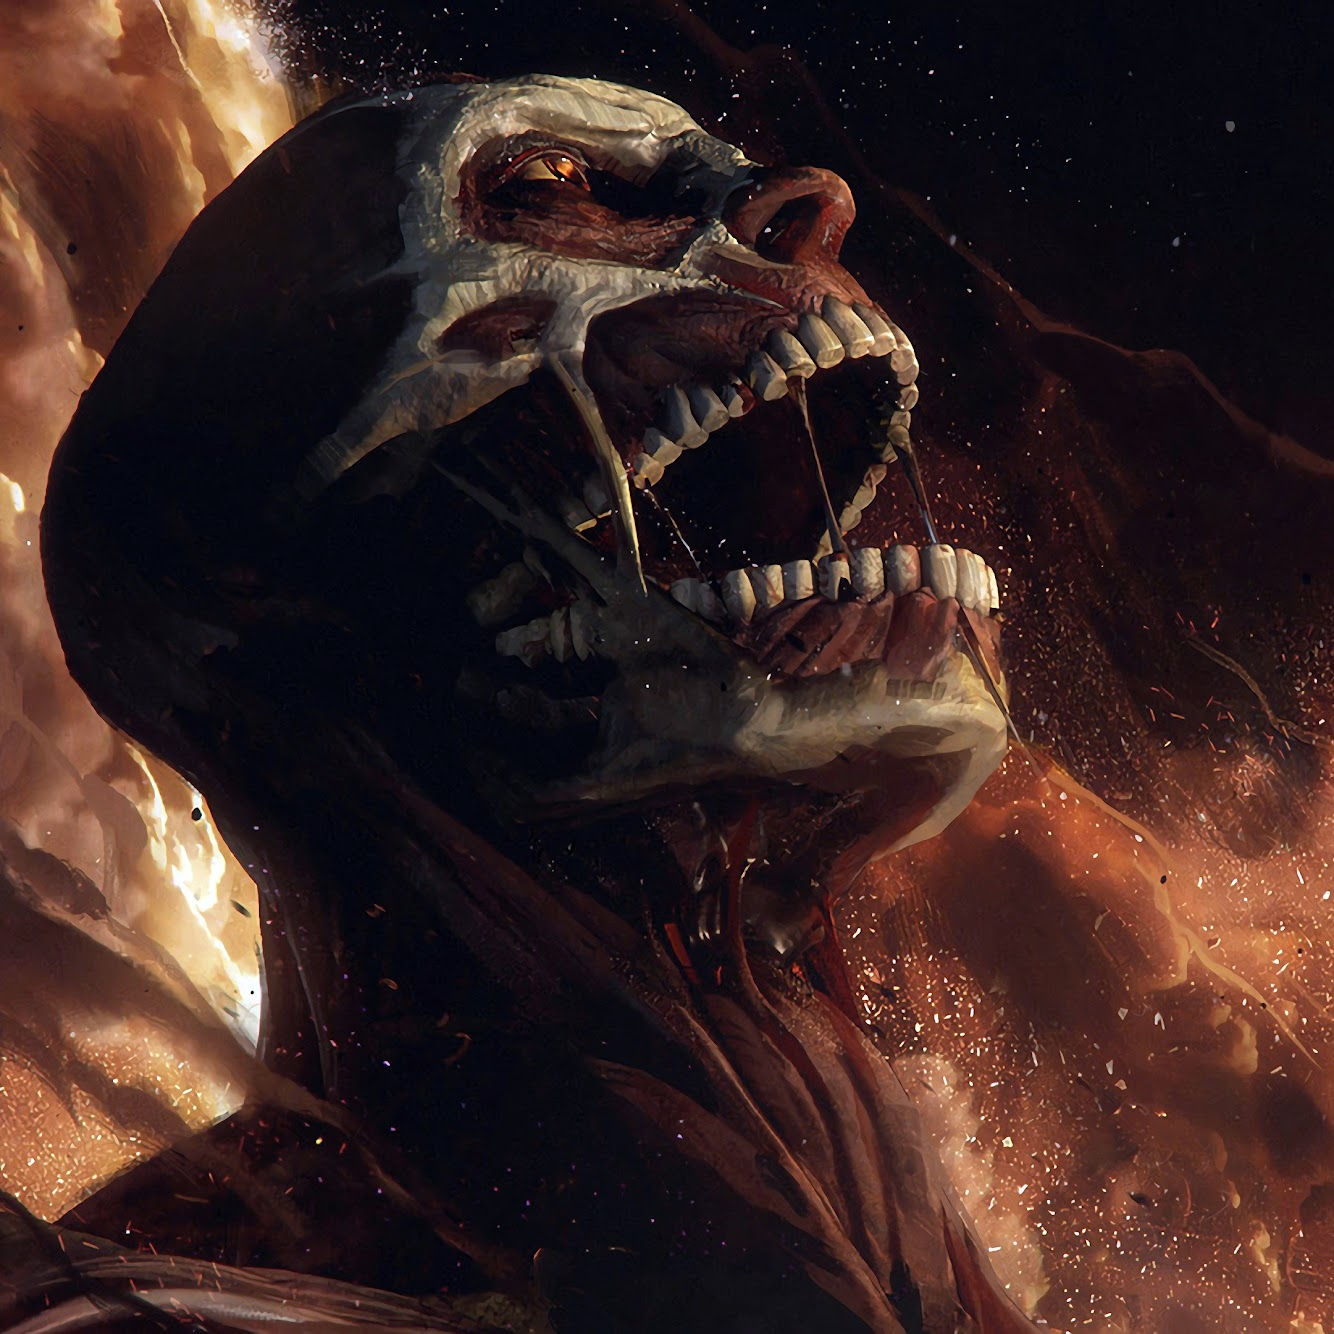 Here's how to change the wallpaper on your iphone or ipad and make it feel like a new device again. Colossal Titan, Attack on Titan, 4K, #28 Wallpaper